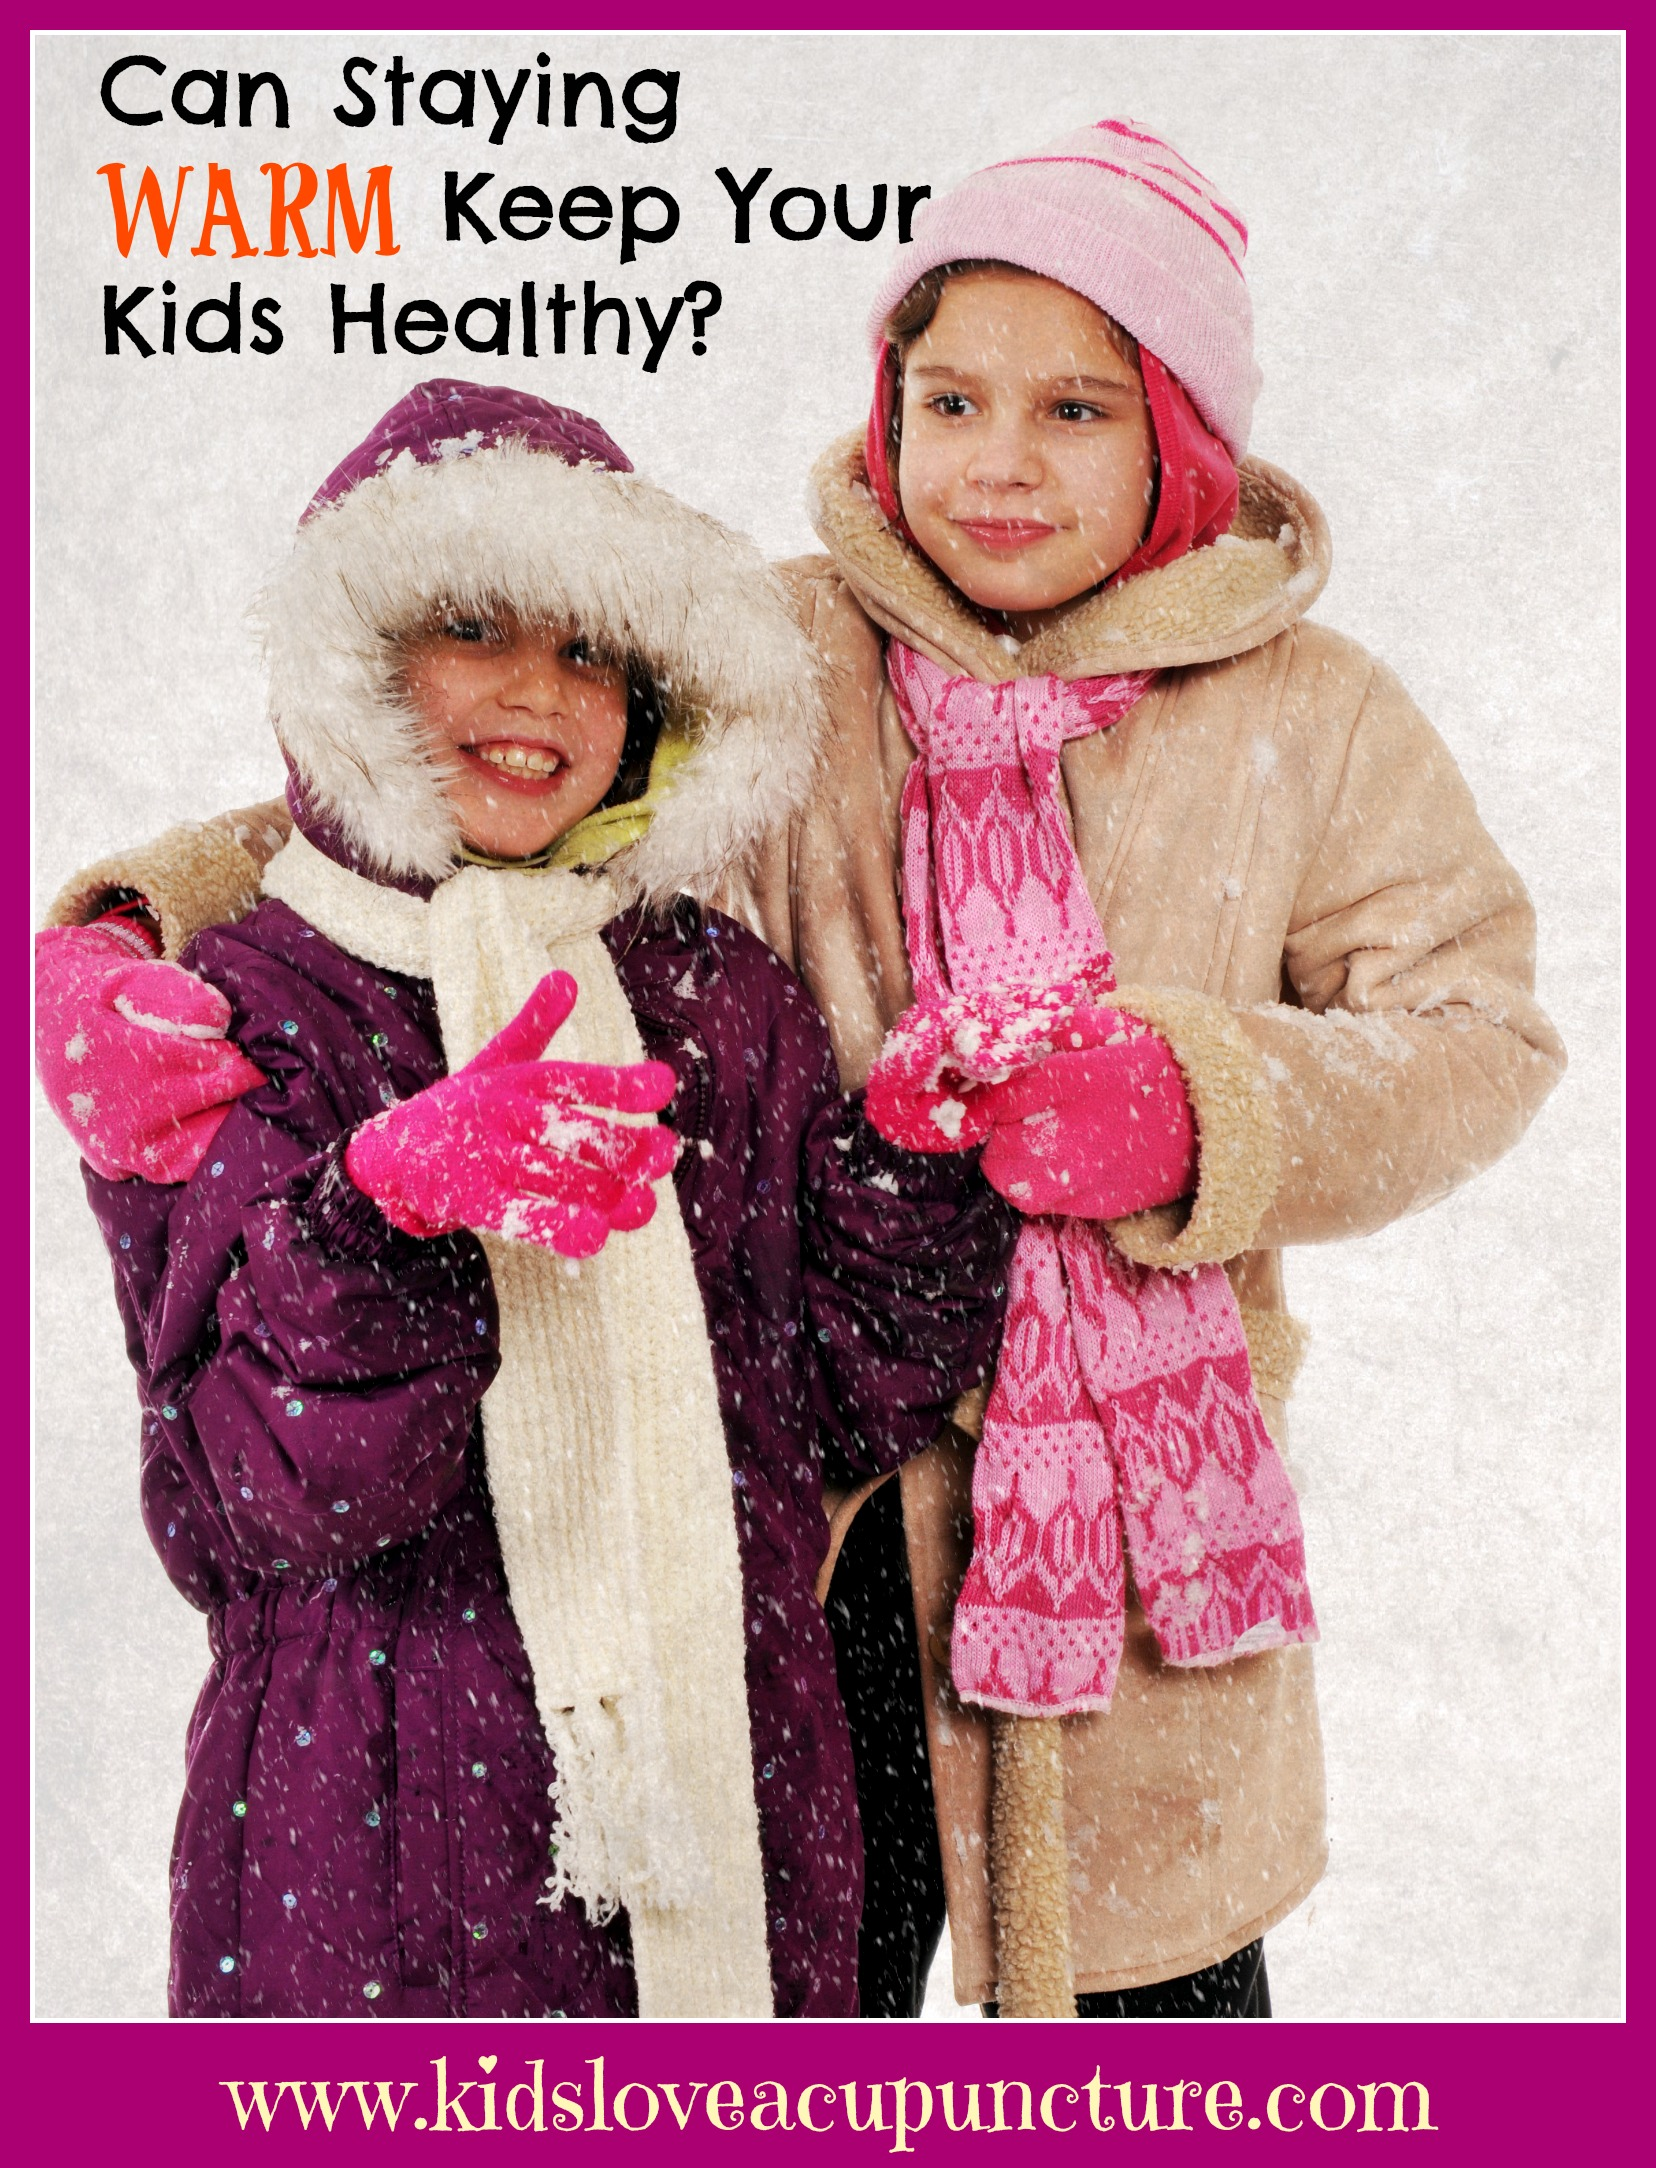 Can Staying Warm Keep Your Kids Healthy?